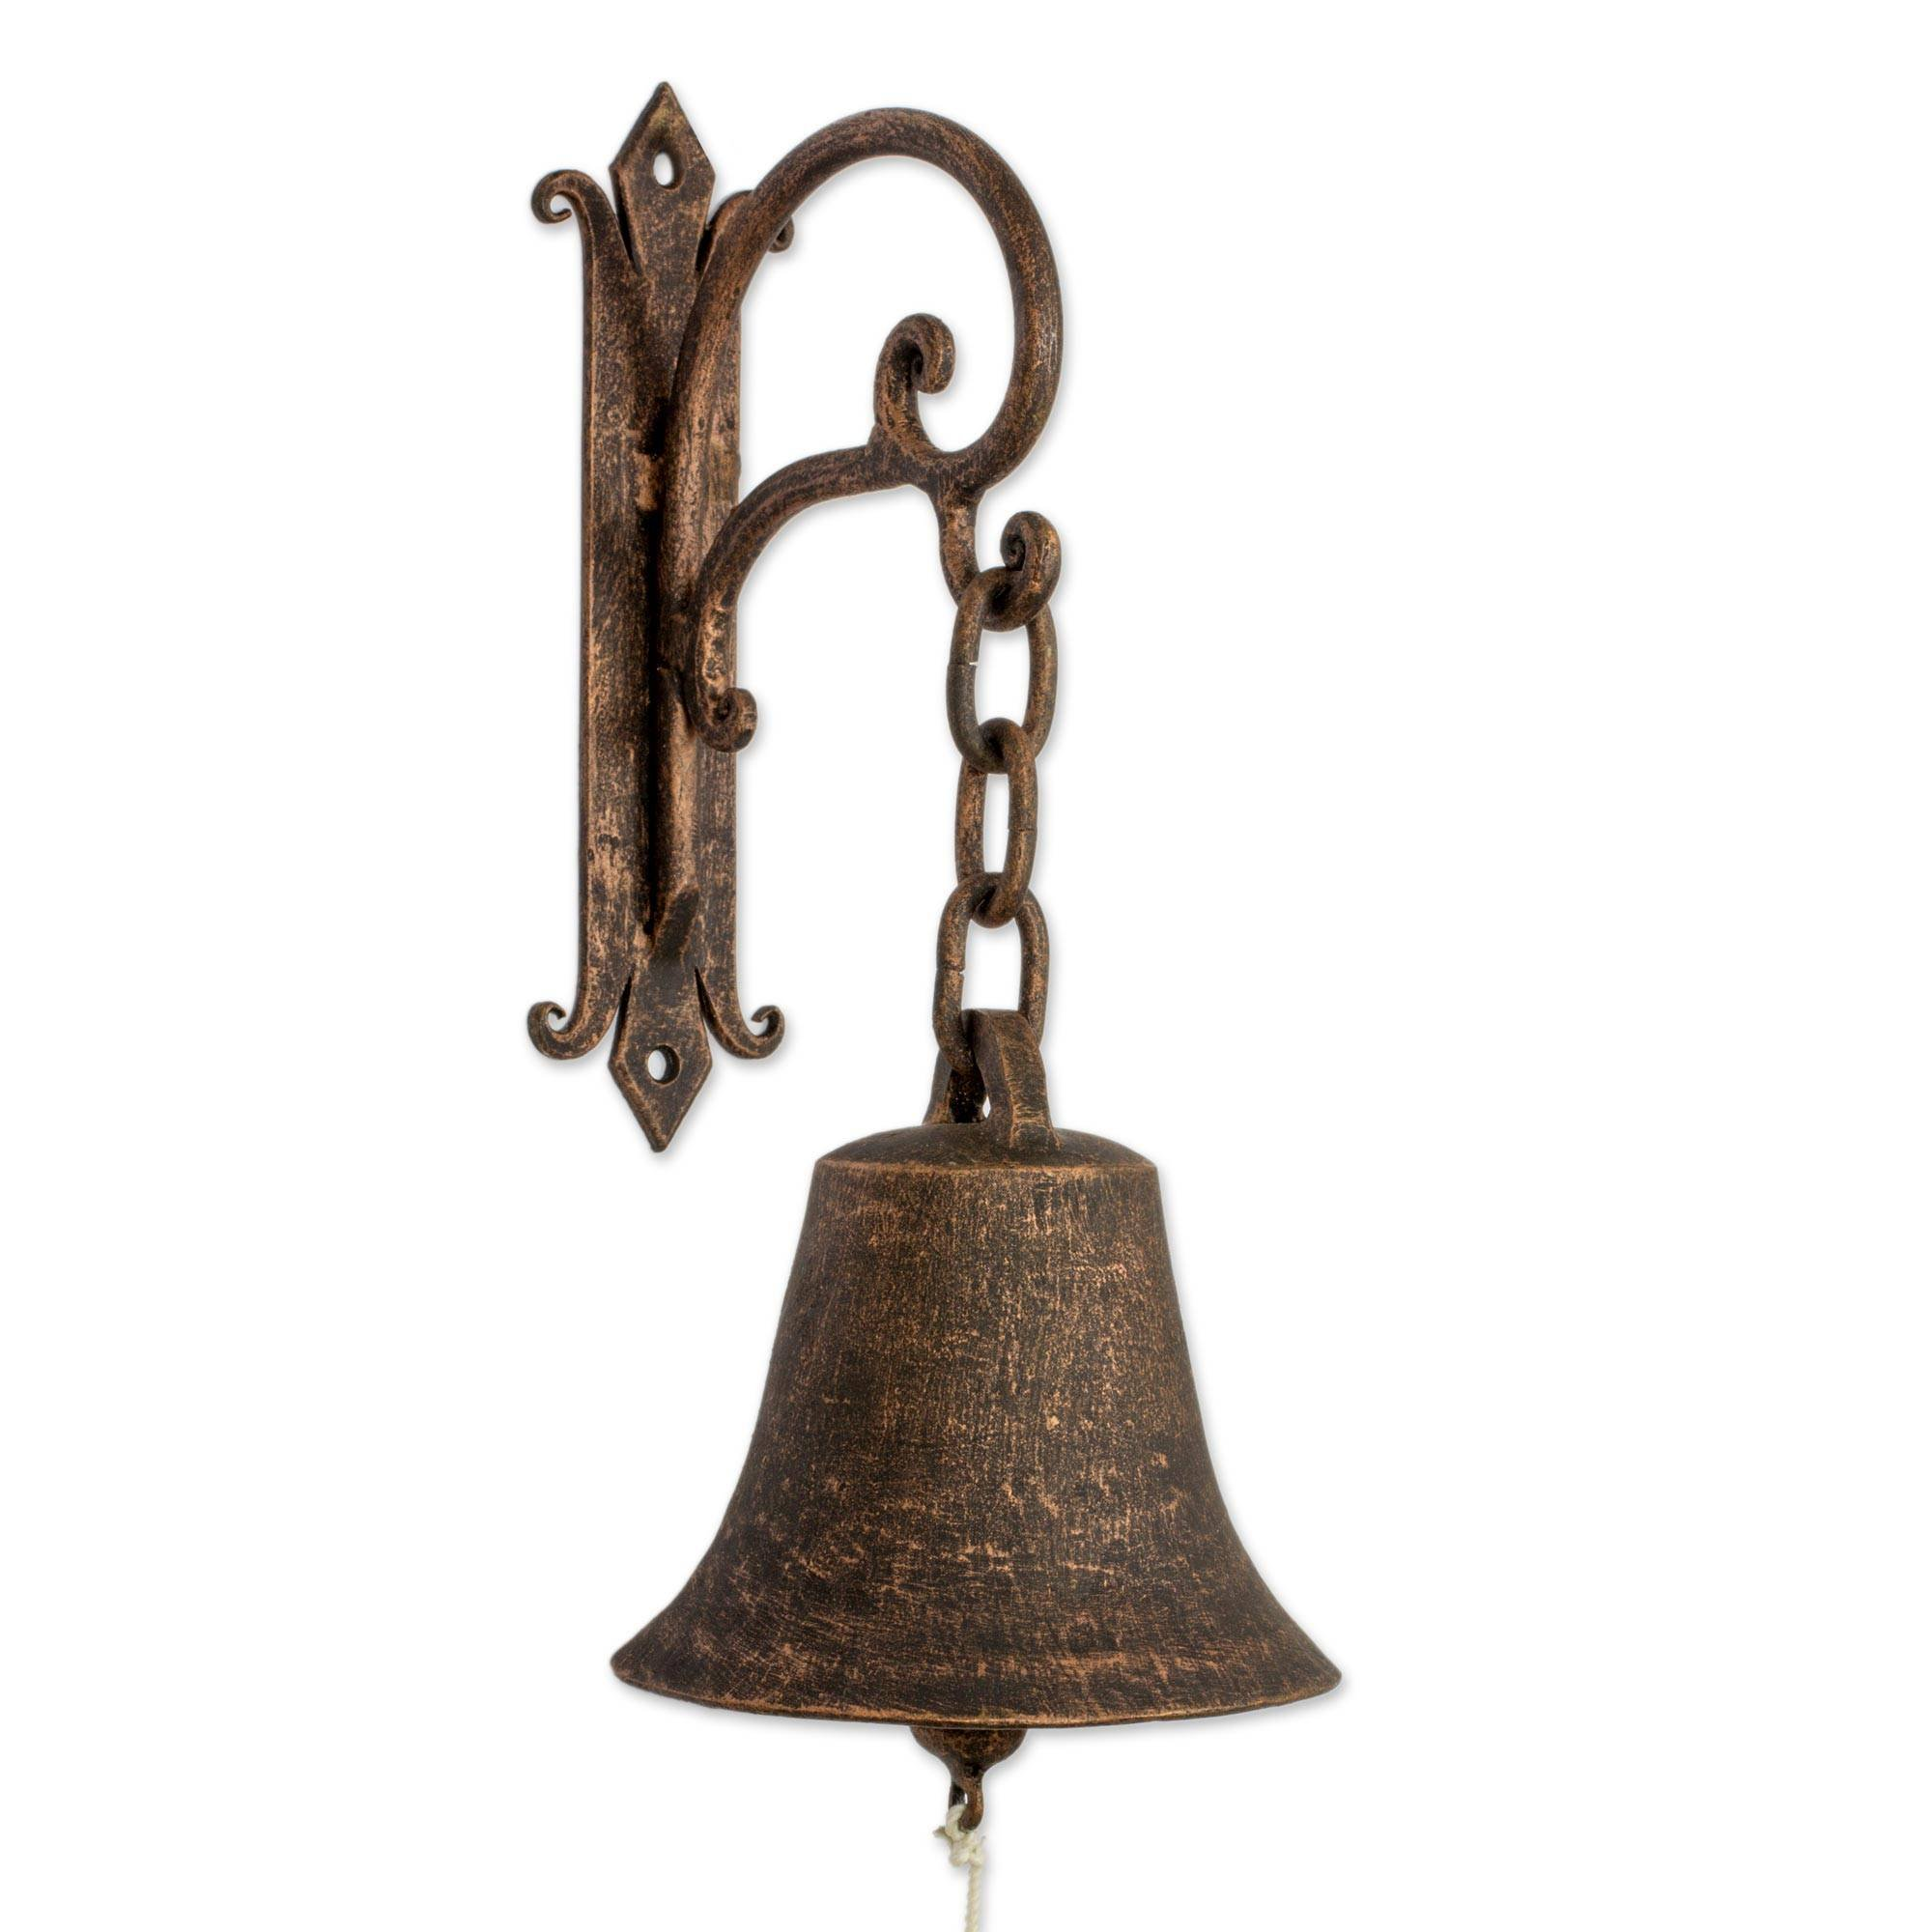 NOVICA Decorative Metal Cabinet Accessory, Brown, 'Bell Of San Francisco' by NOVICA